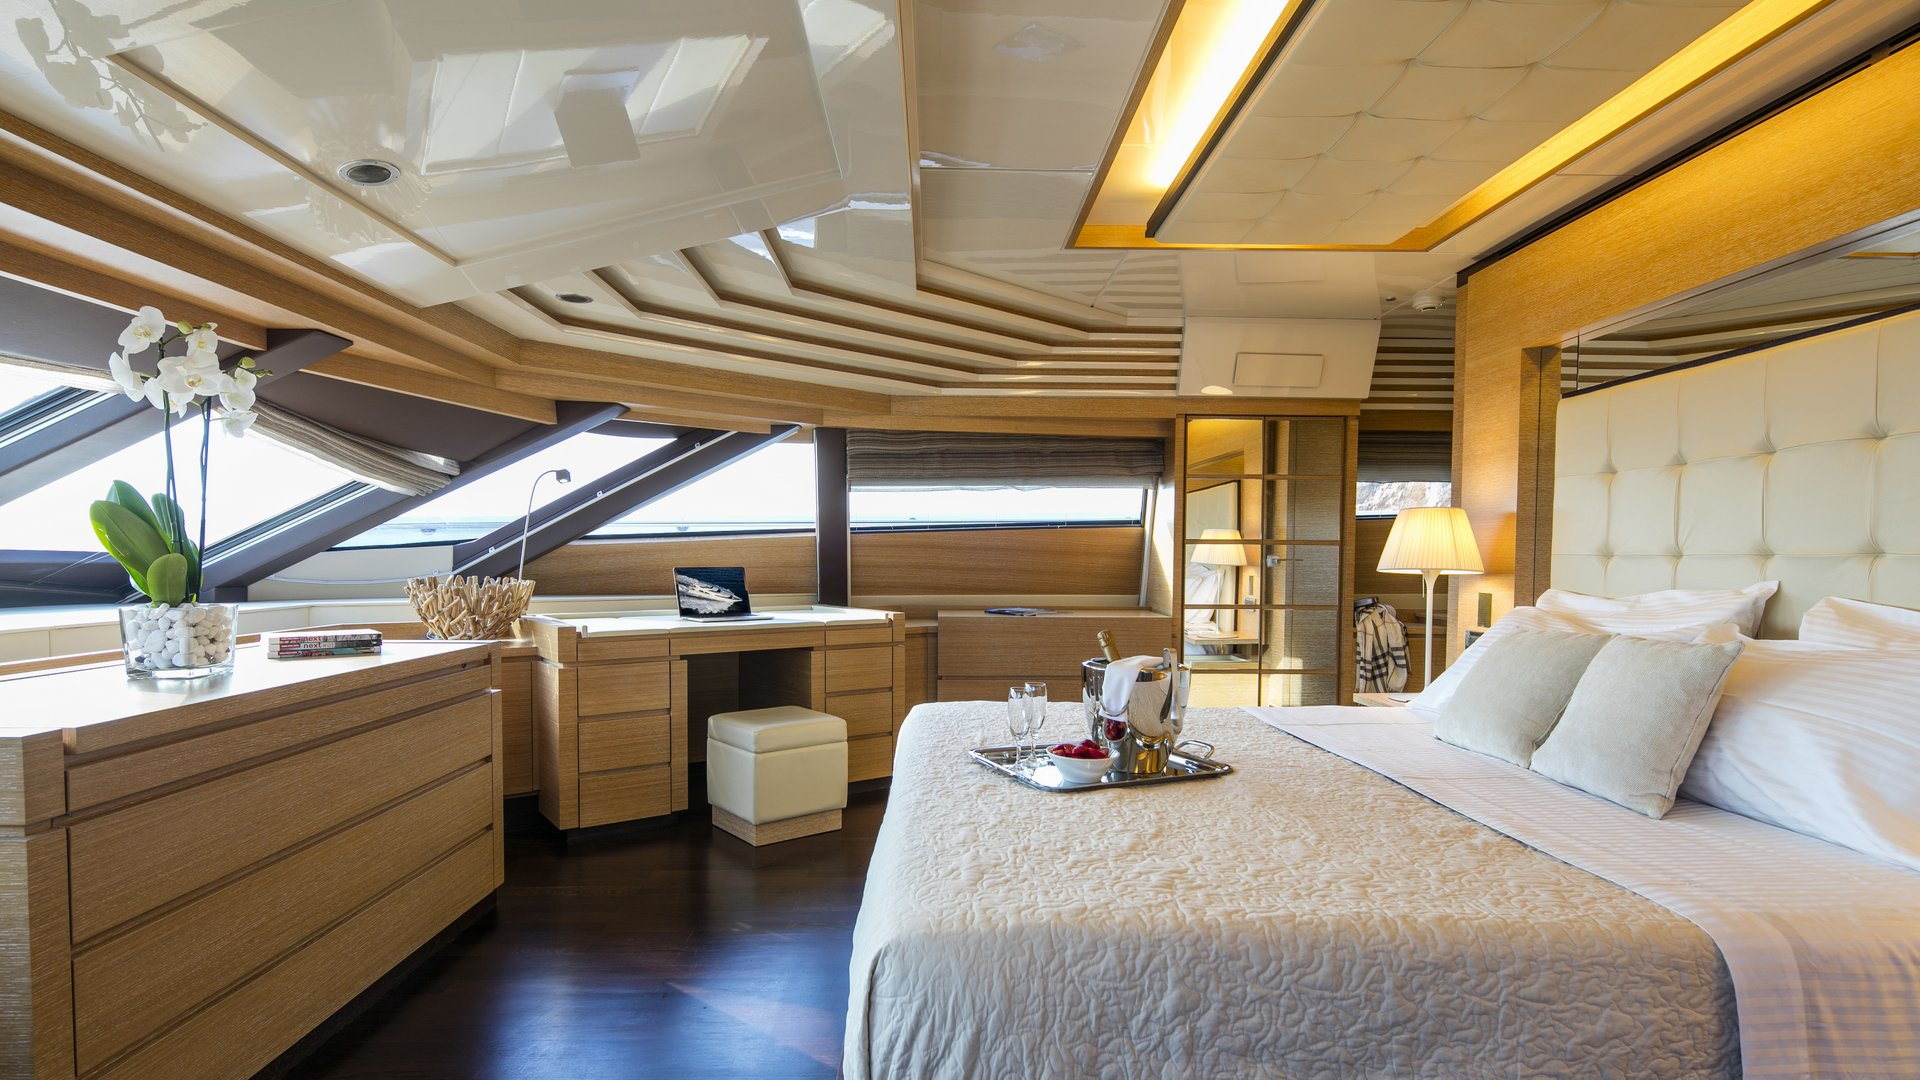 M/Y RINI yacht for charter master suite bed